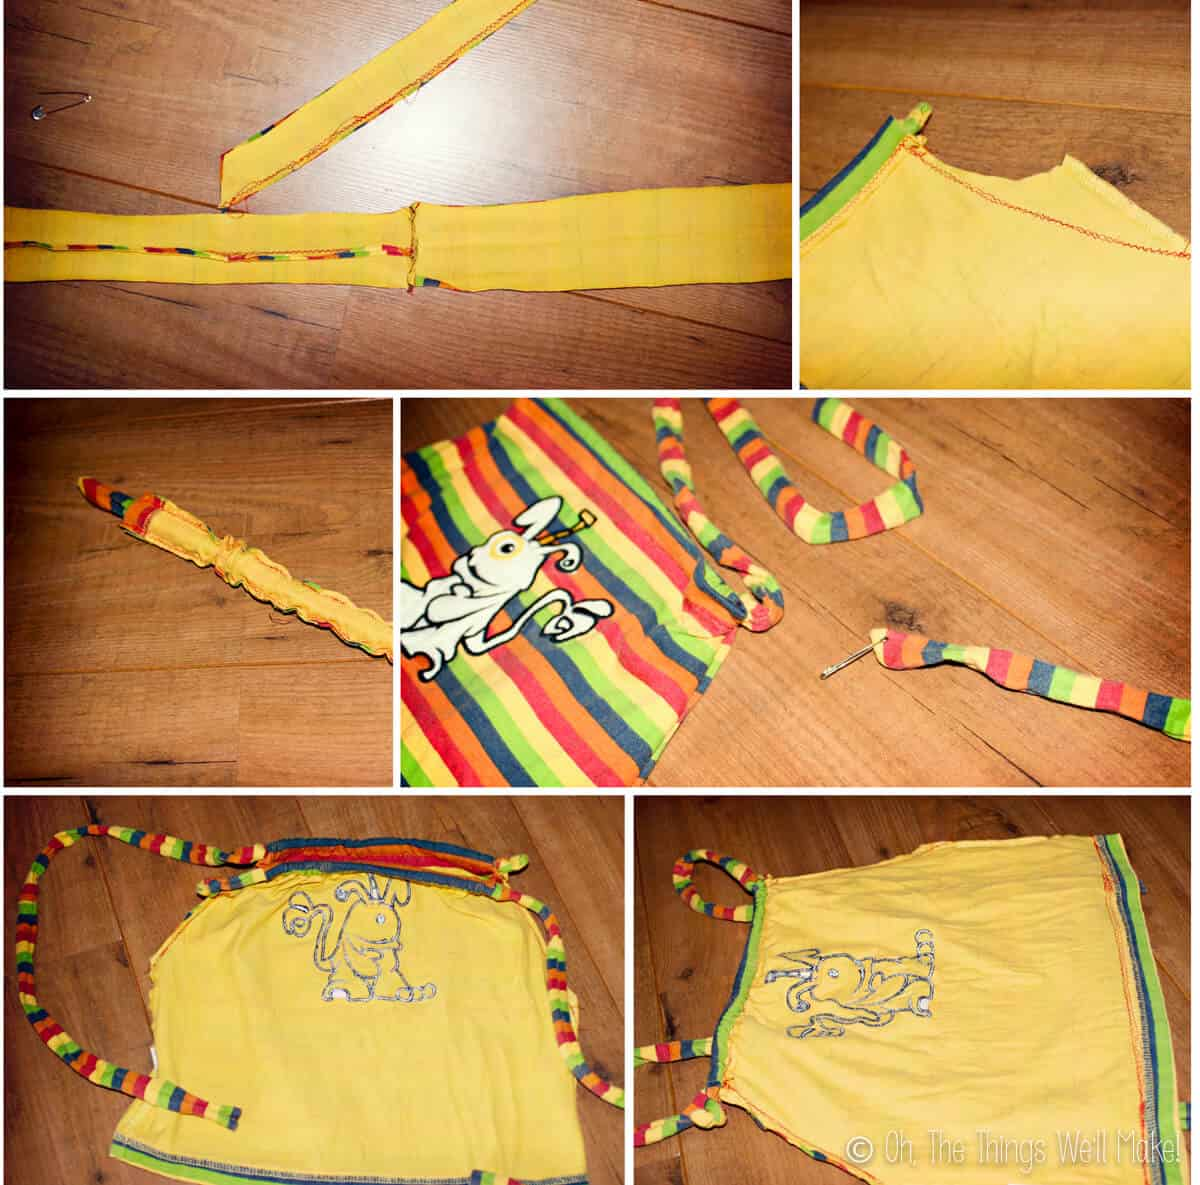 A photo collage showing the steps to making a t-shirt drawstring backpack.